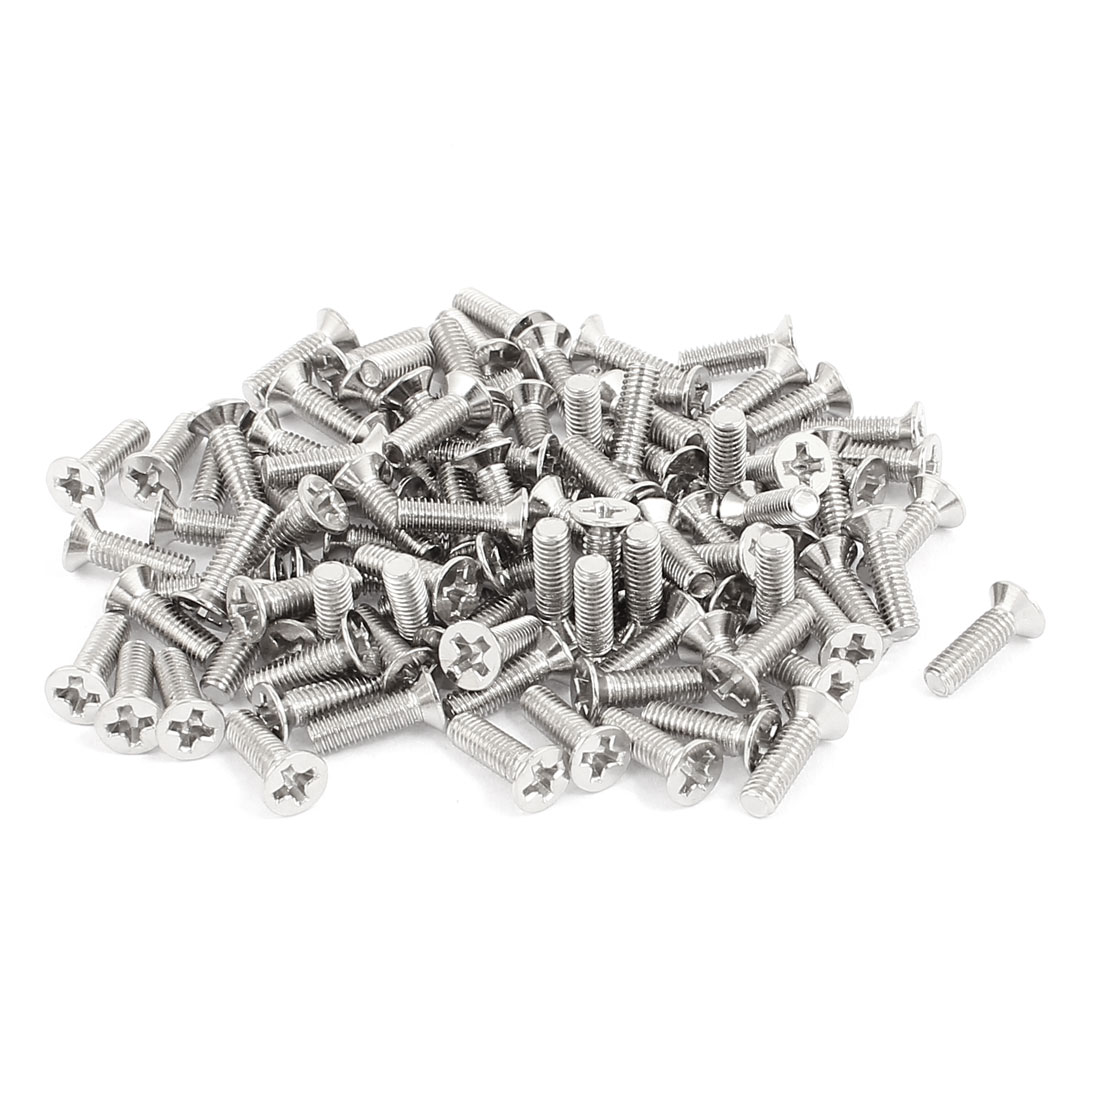 100 Pcs M3x10mm Stainless Steel Countersunk Flat Head Phillips Machine Screws Bolts